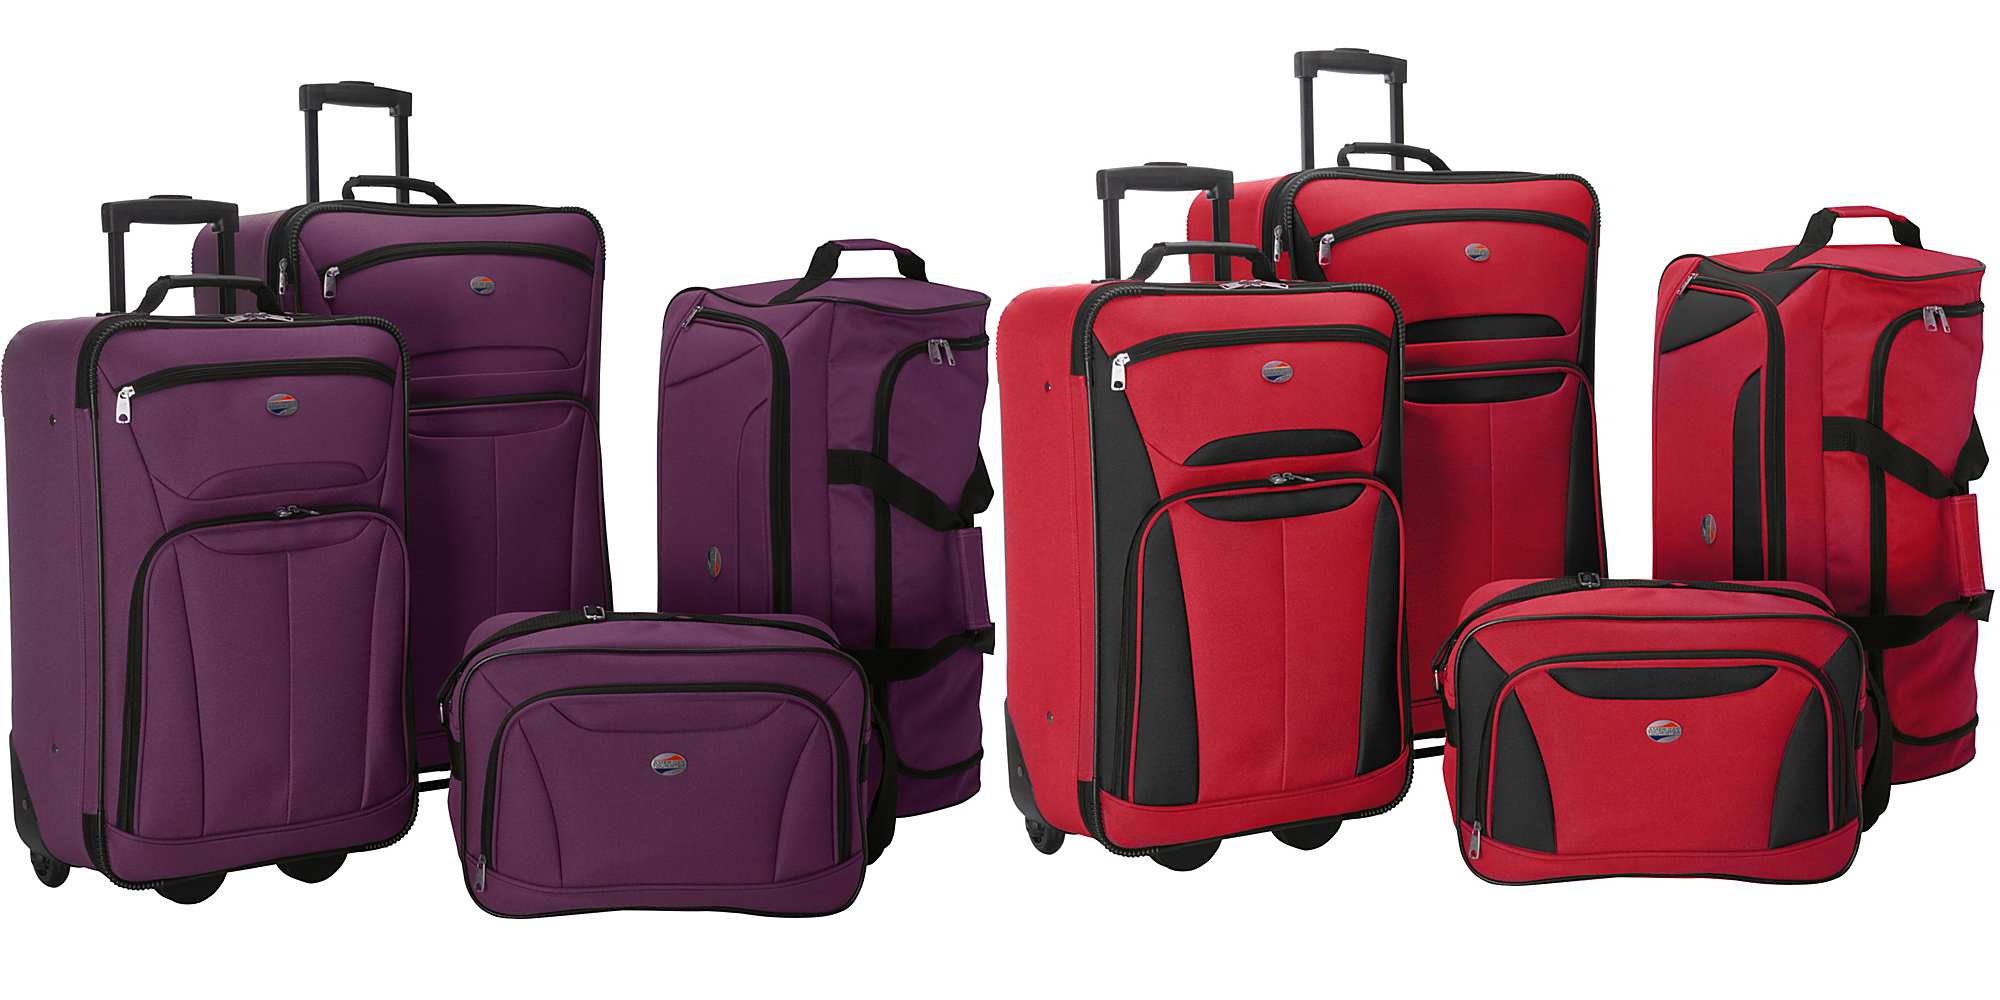 american tourister 4 pc luggage